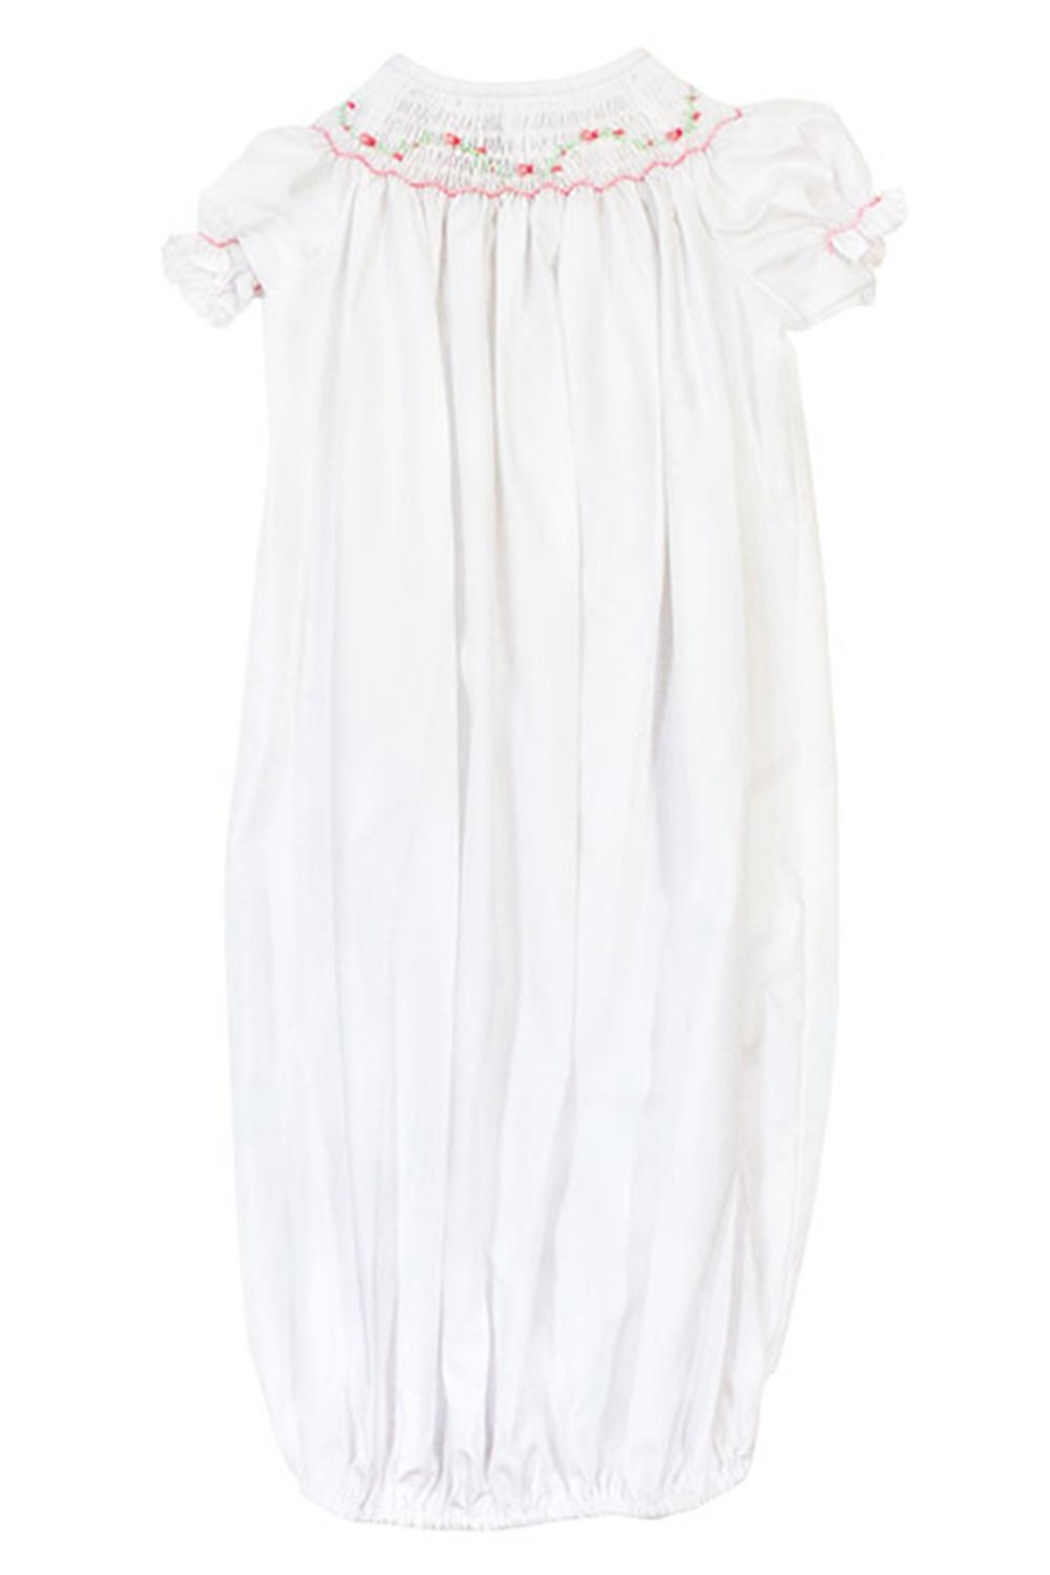 Bailey Boys Pink Vine Sack-Gown - Front Full Image